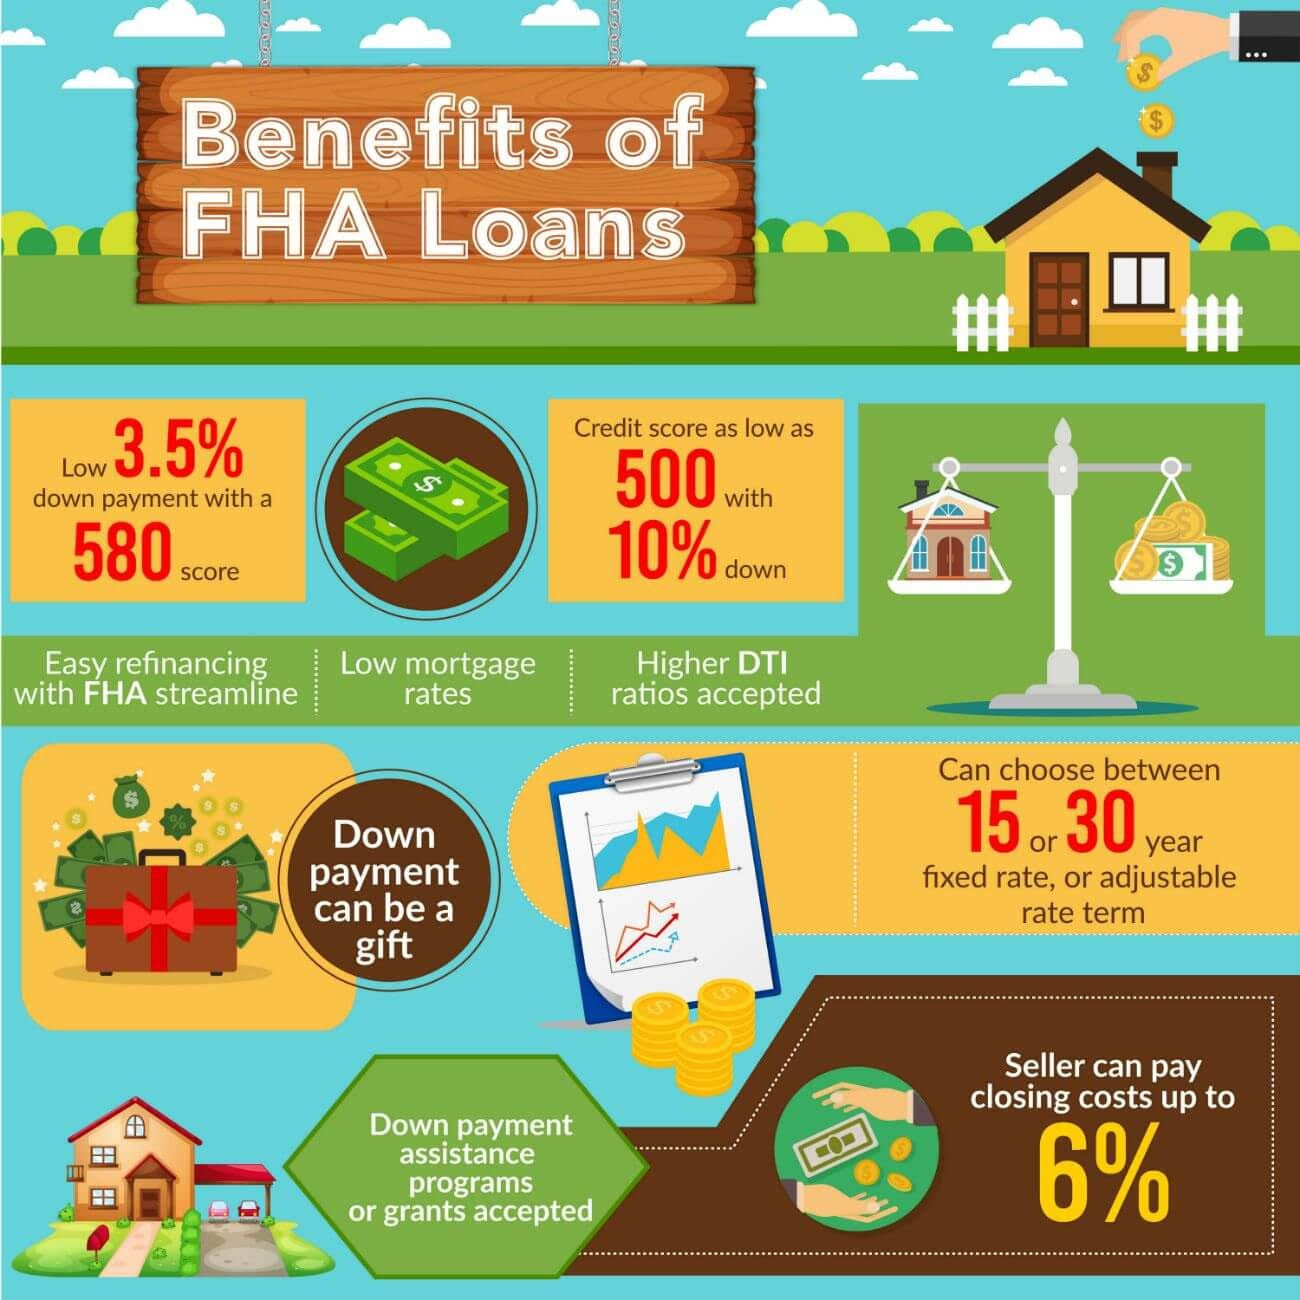 Kentucky Fha Loan Requirements For 2020 Fha Loans Fha Mortgage Mortgage Loans